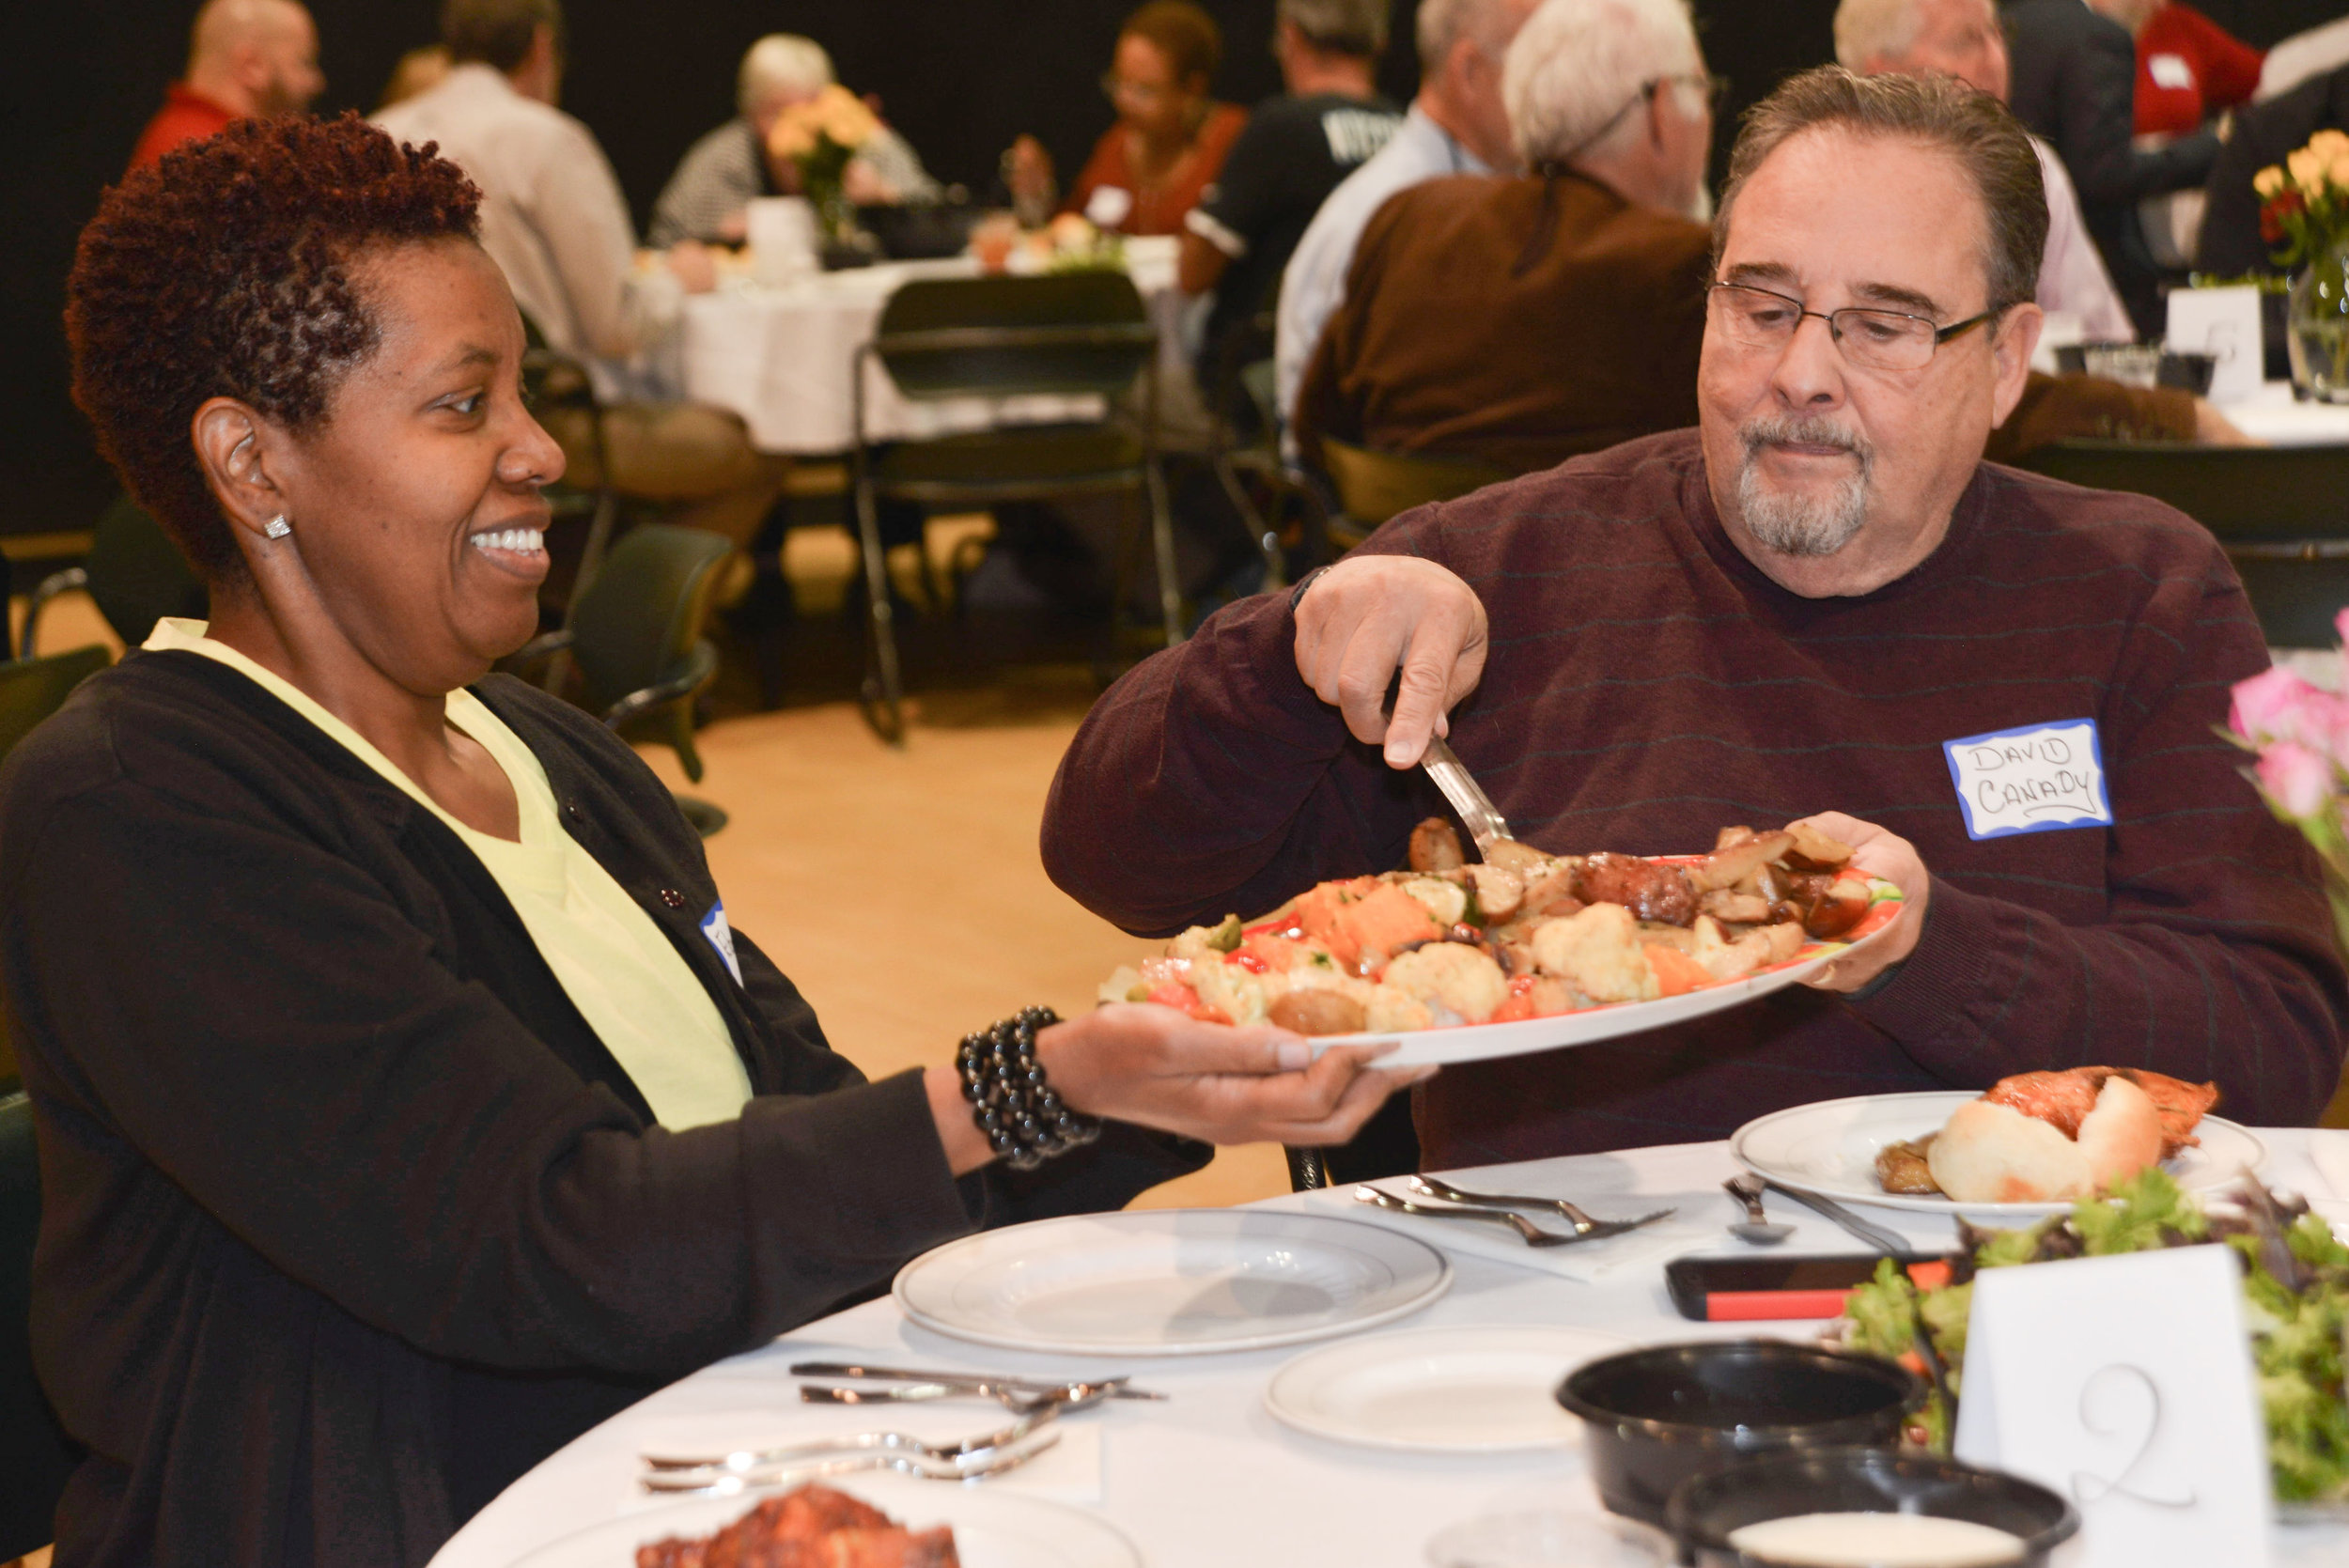 Participants in a Peoples Supper at University City United Methodist Church in Charlotte, North Carolina in November 2018.